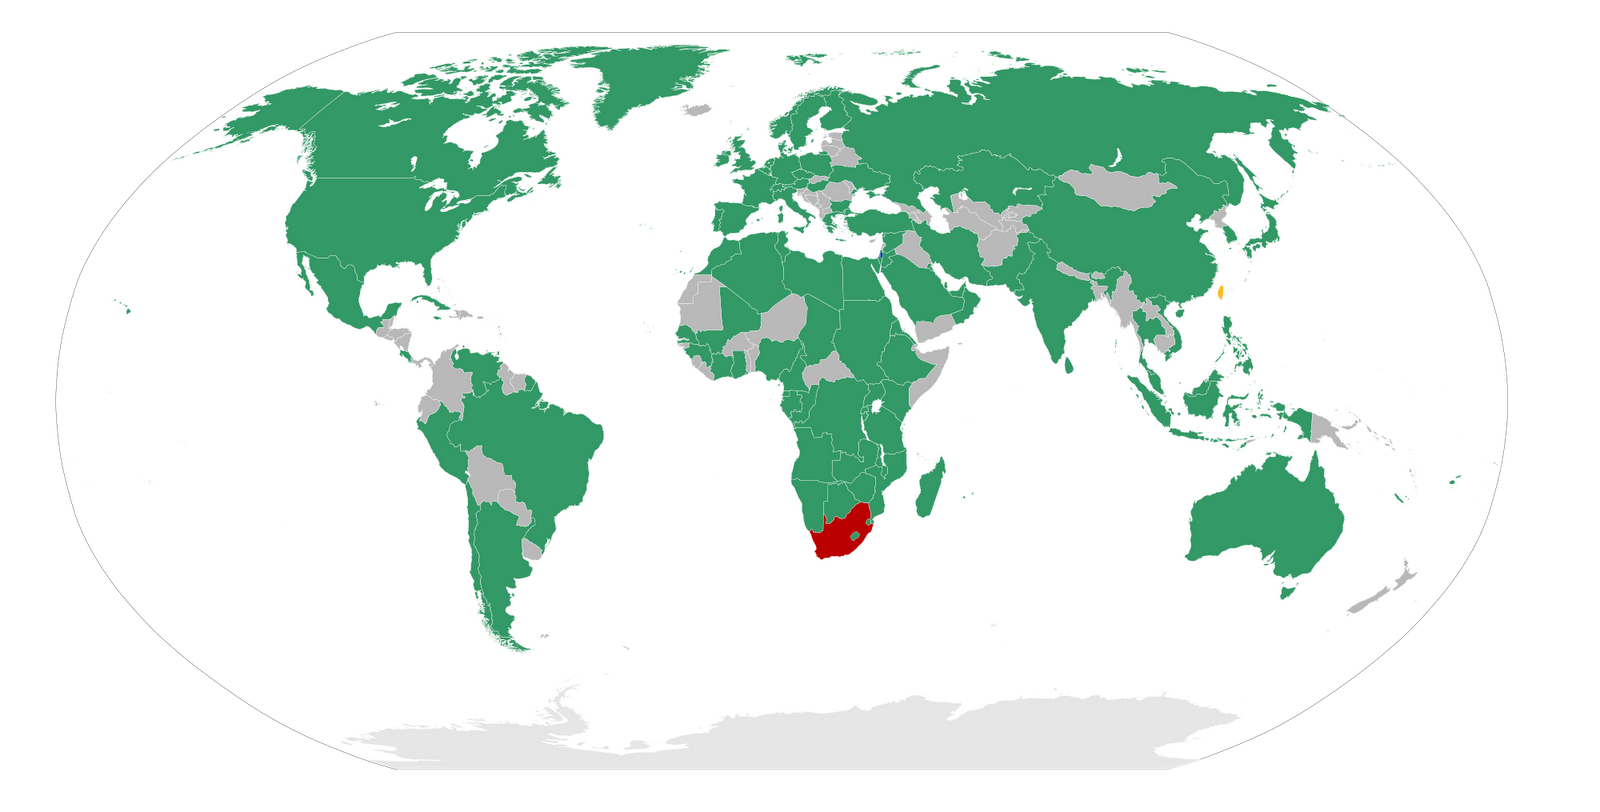 The colonies that are separated into three different broader sections